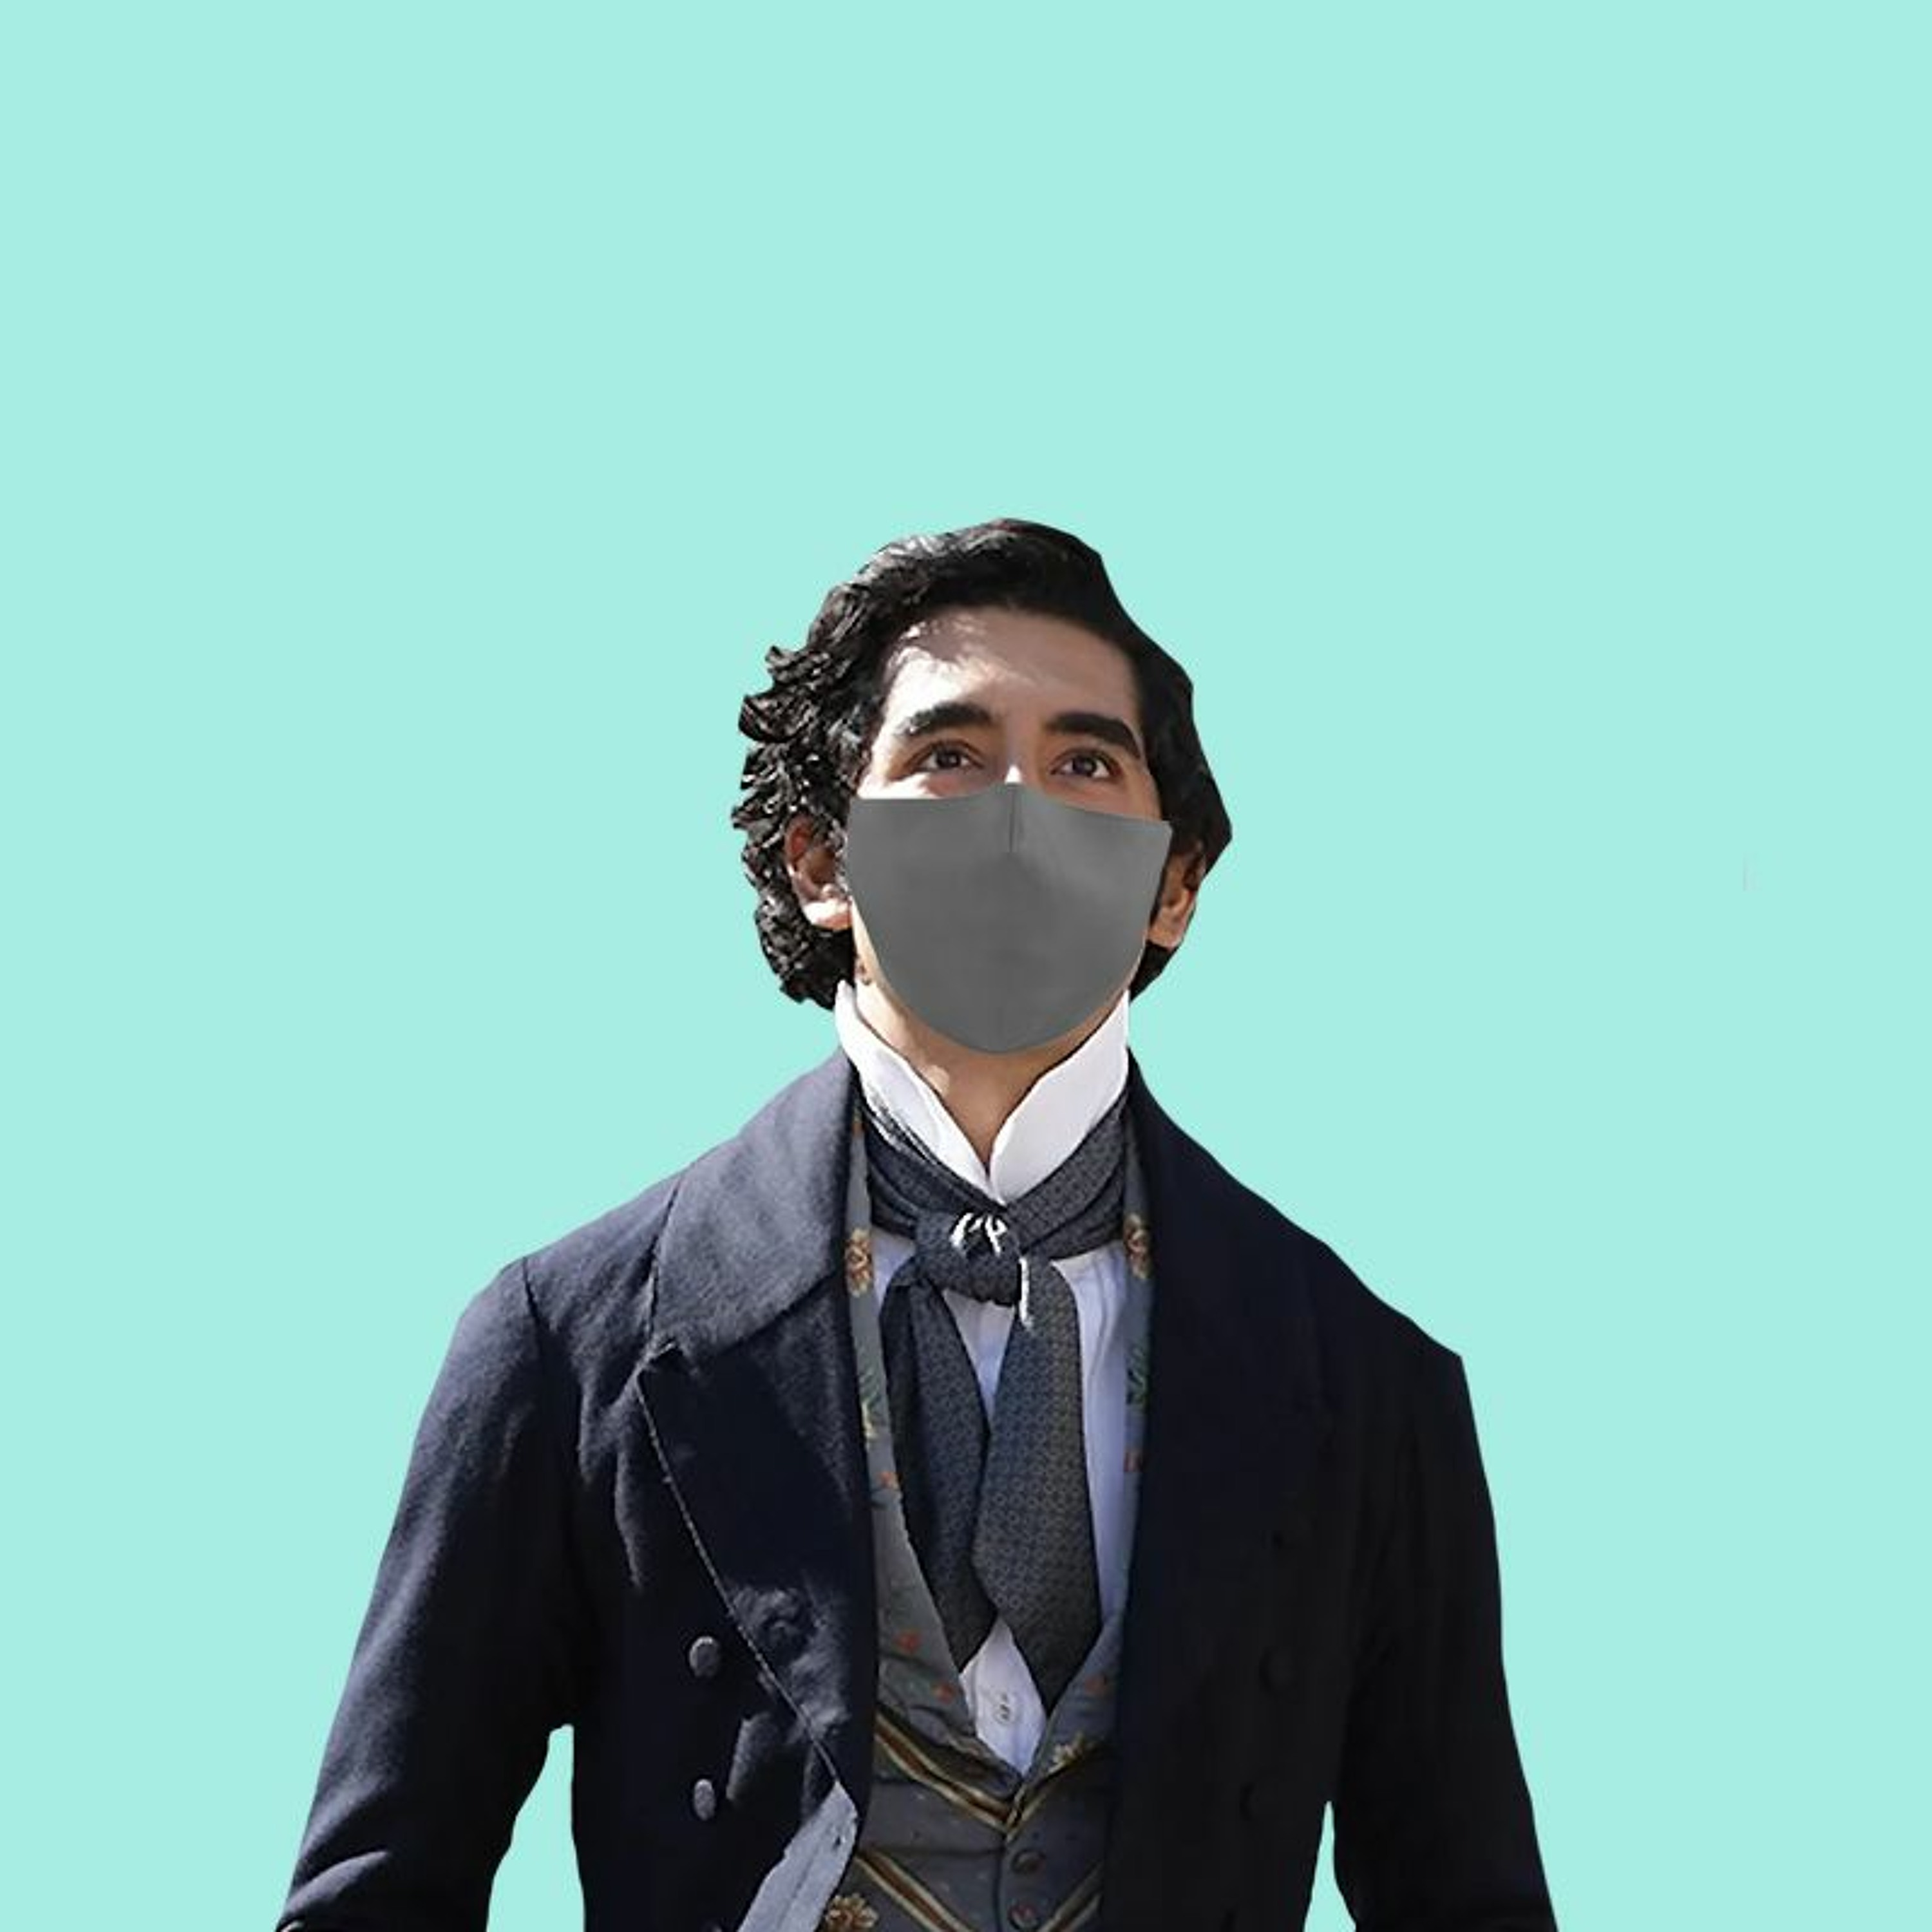 Episode 110: The Personal History of David Copperfield (2019)